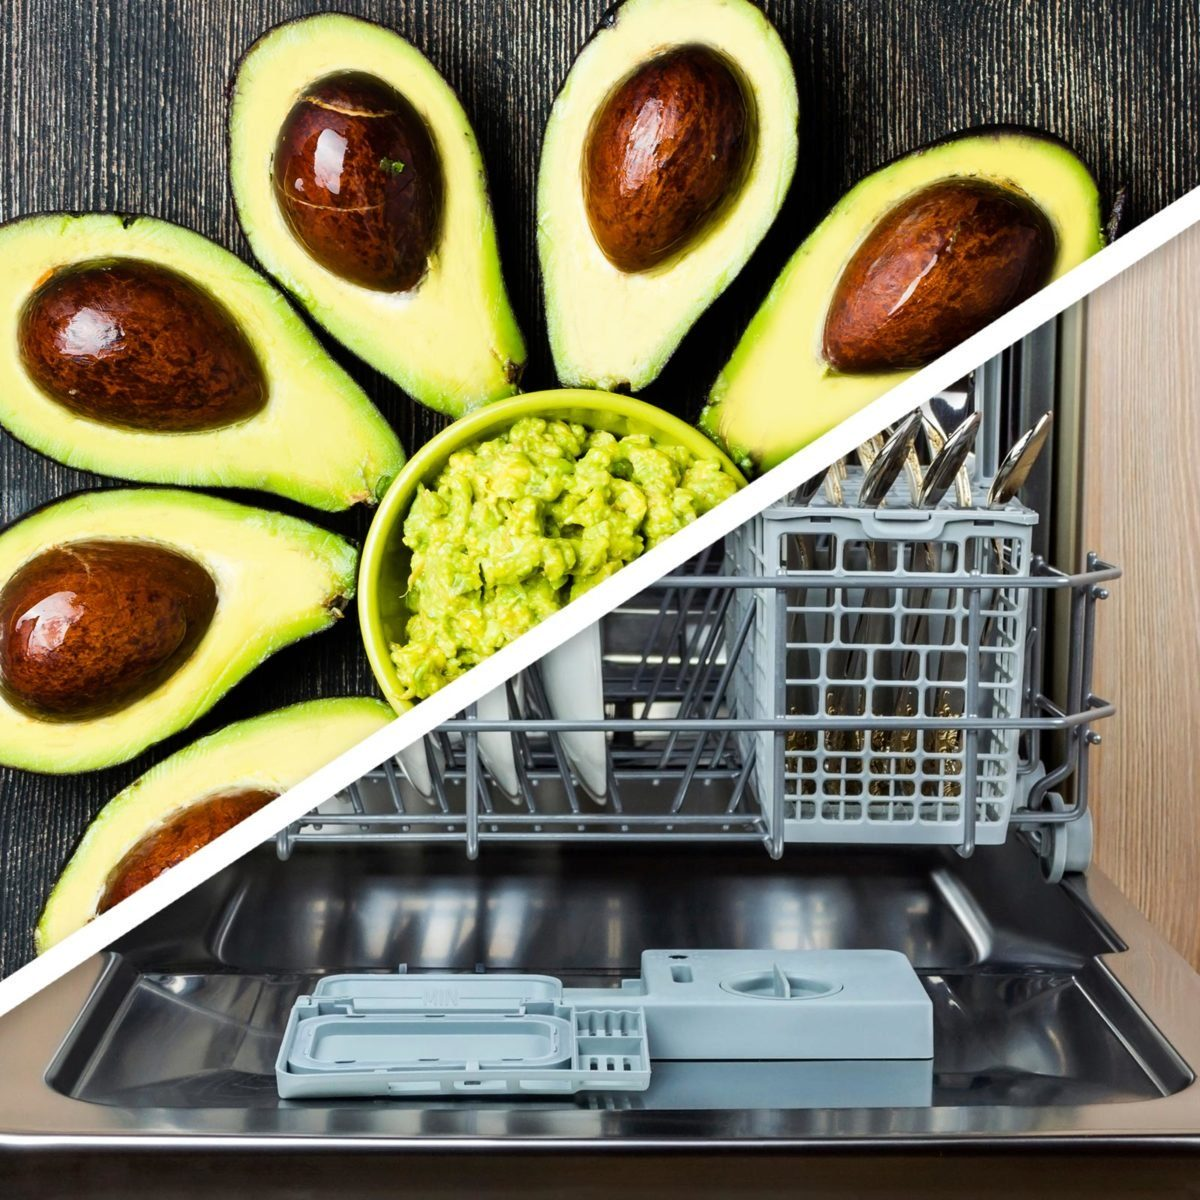 Avocados and dishwasher